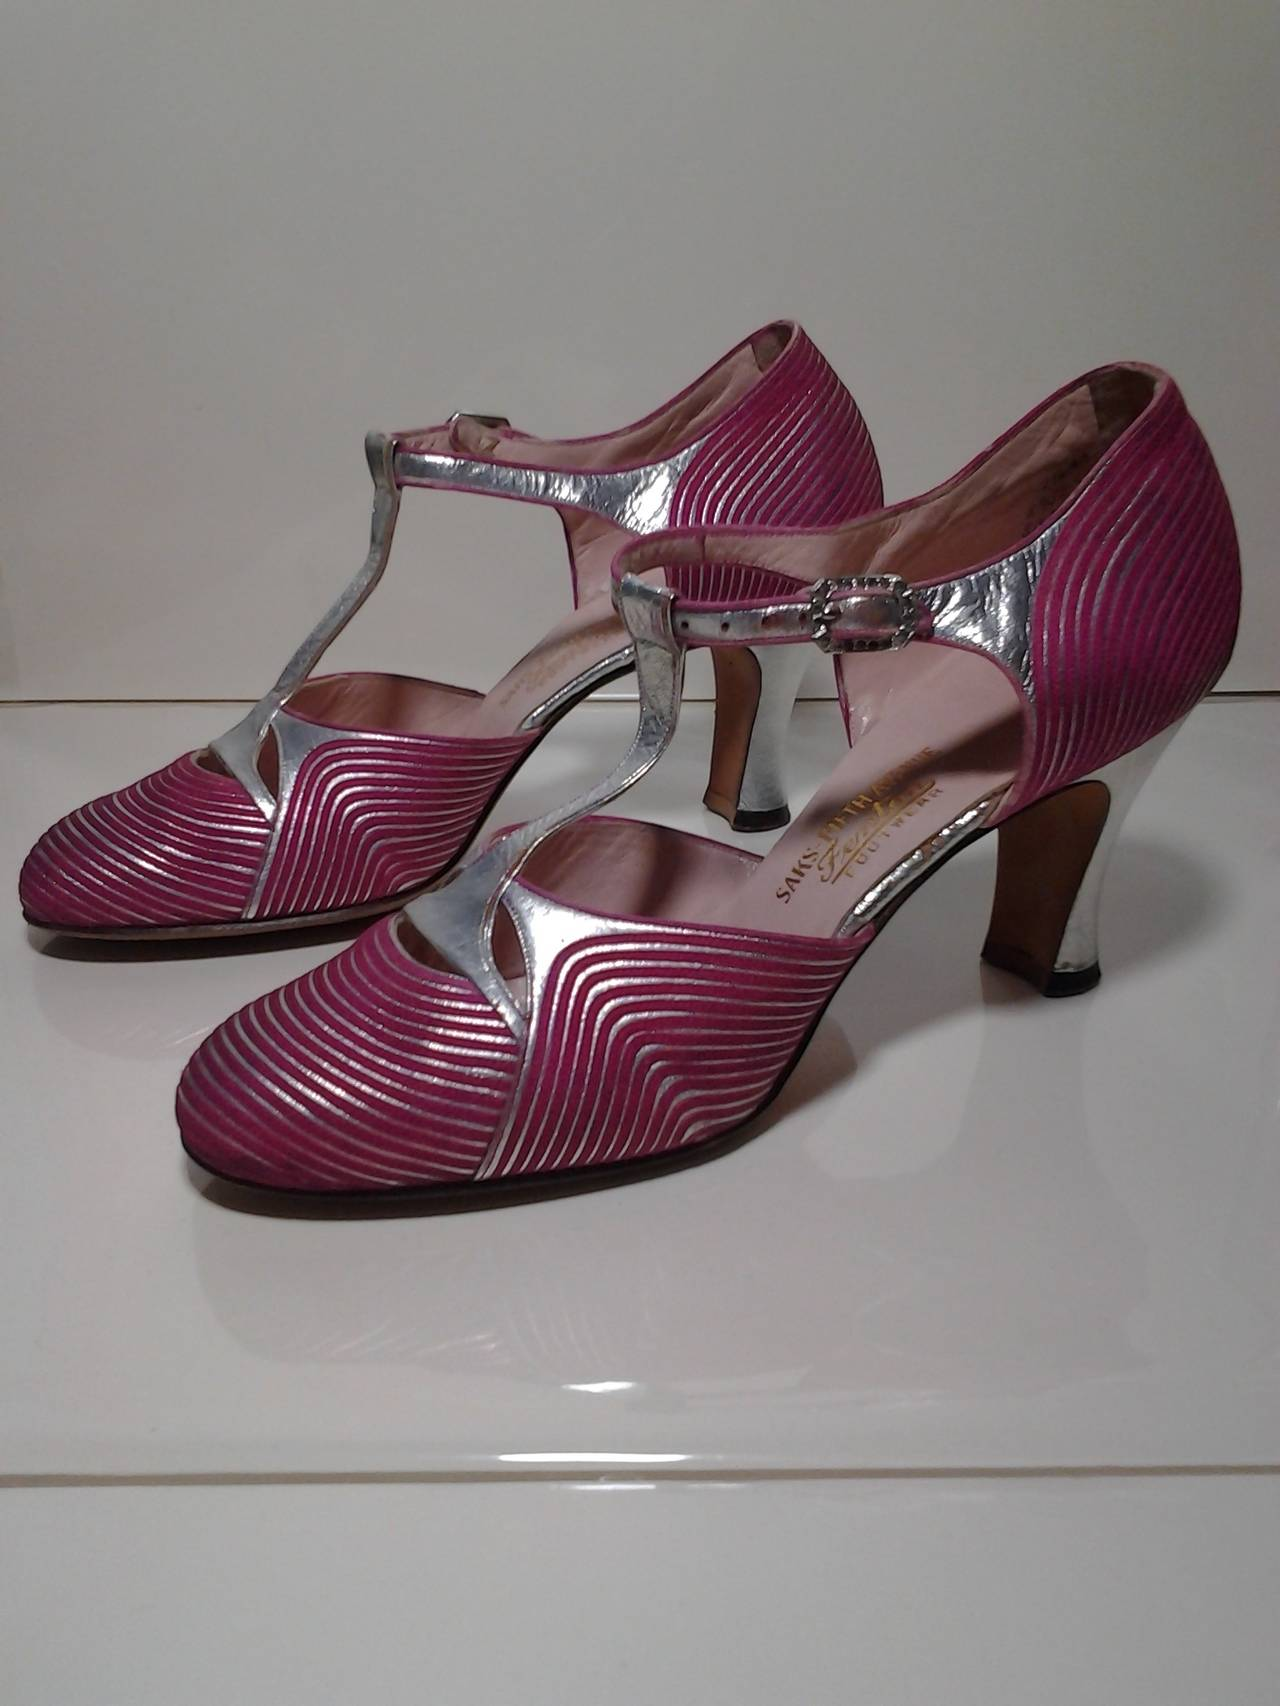 1920s Art Deco Silver Gilt Leather and Fuchsia Satin T-Strap Dancing Pump 2